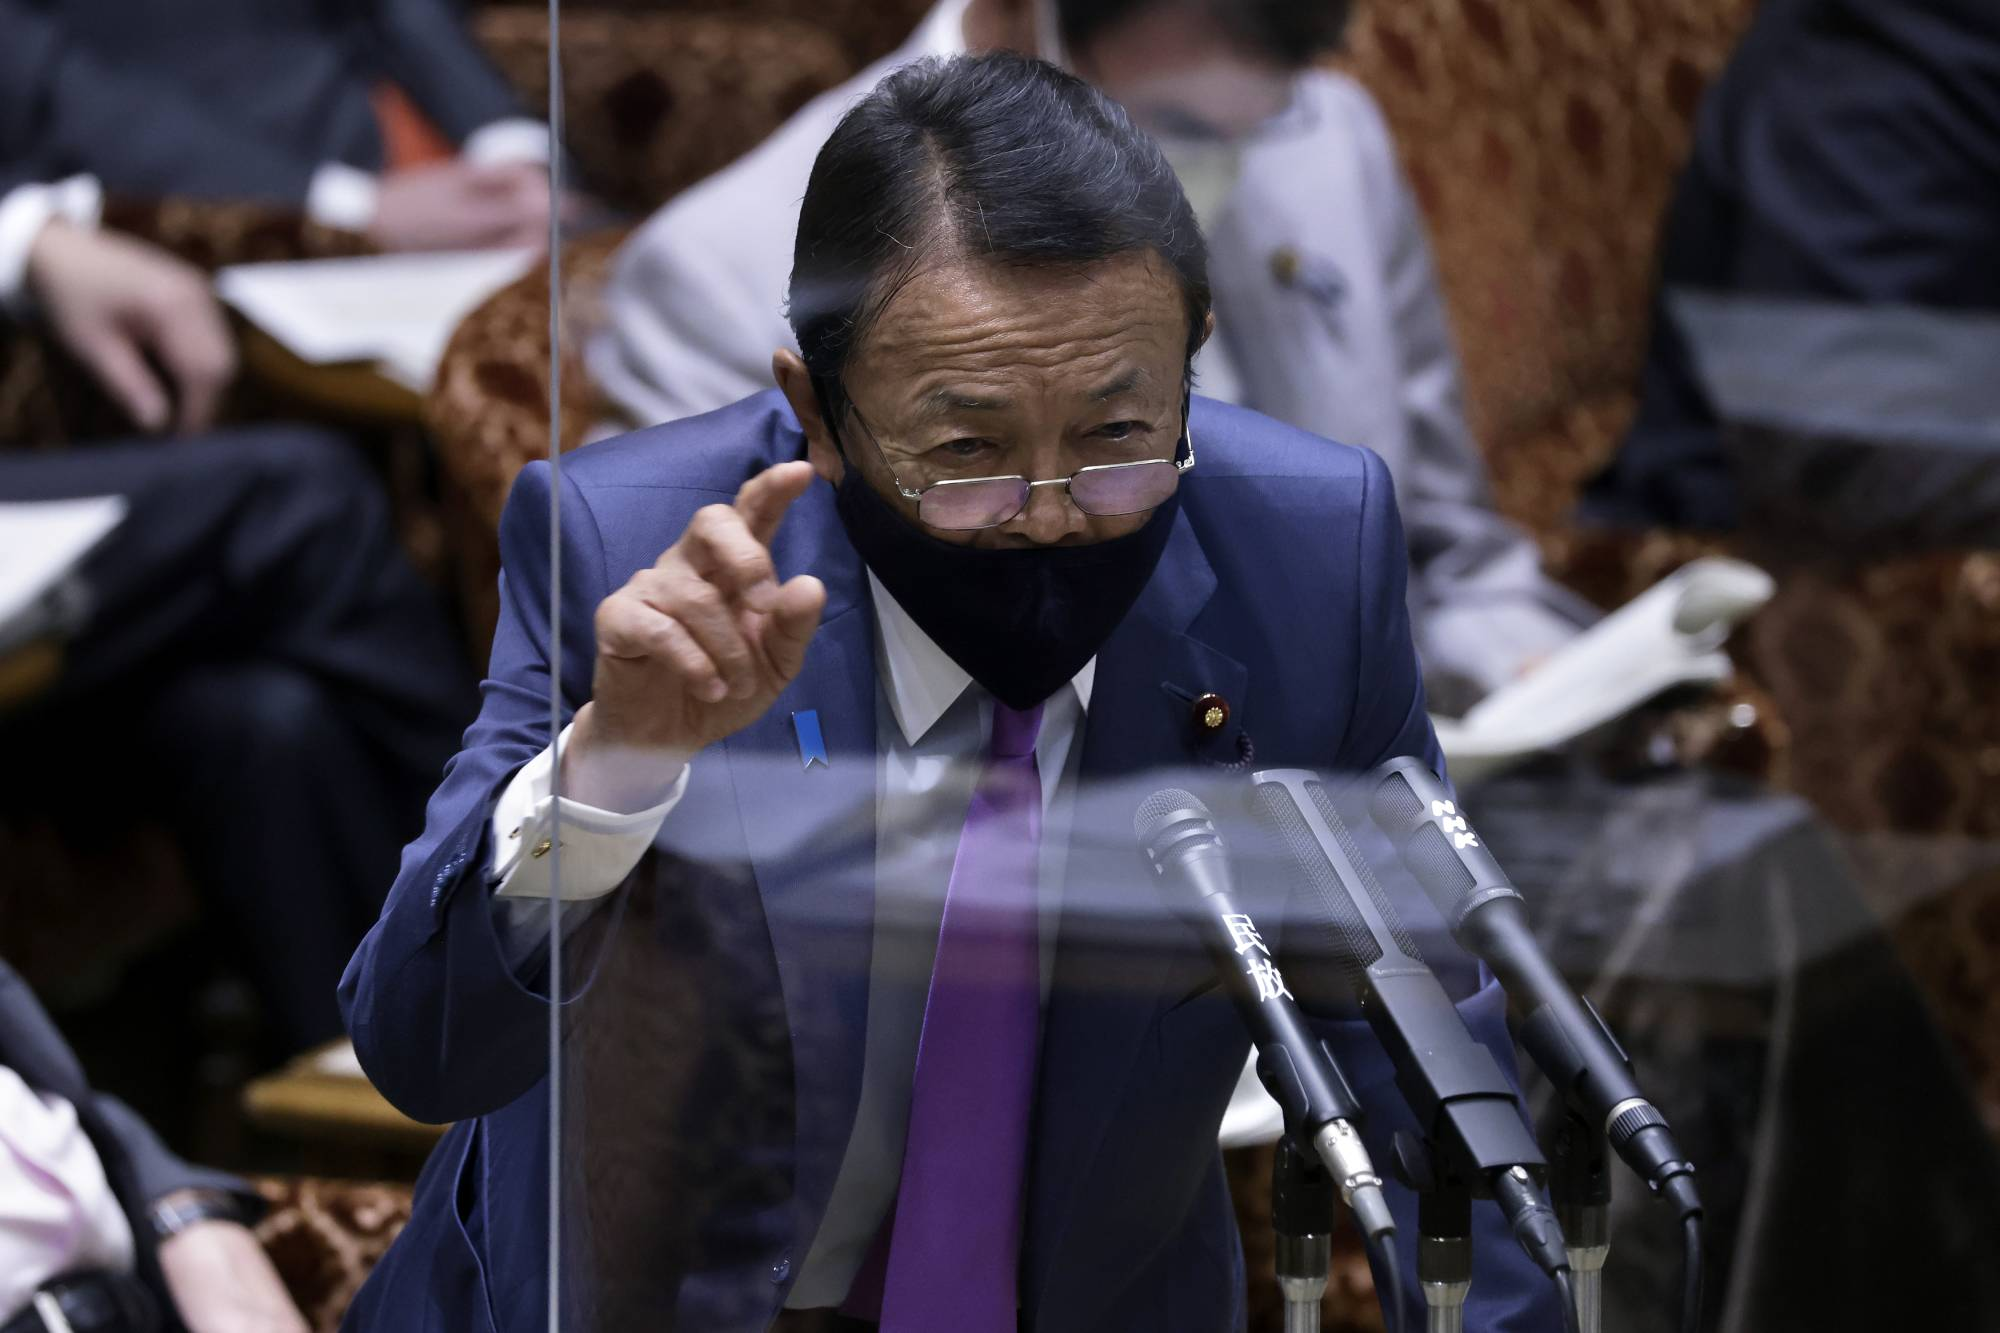 Taro Aso, deputy prime minister and finance minister, speaks during an audit committee session at the Upper House in Tokyo on June 7. | BLOOMBERG